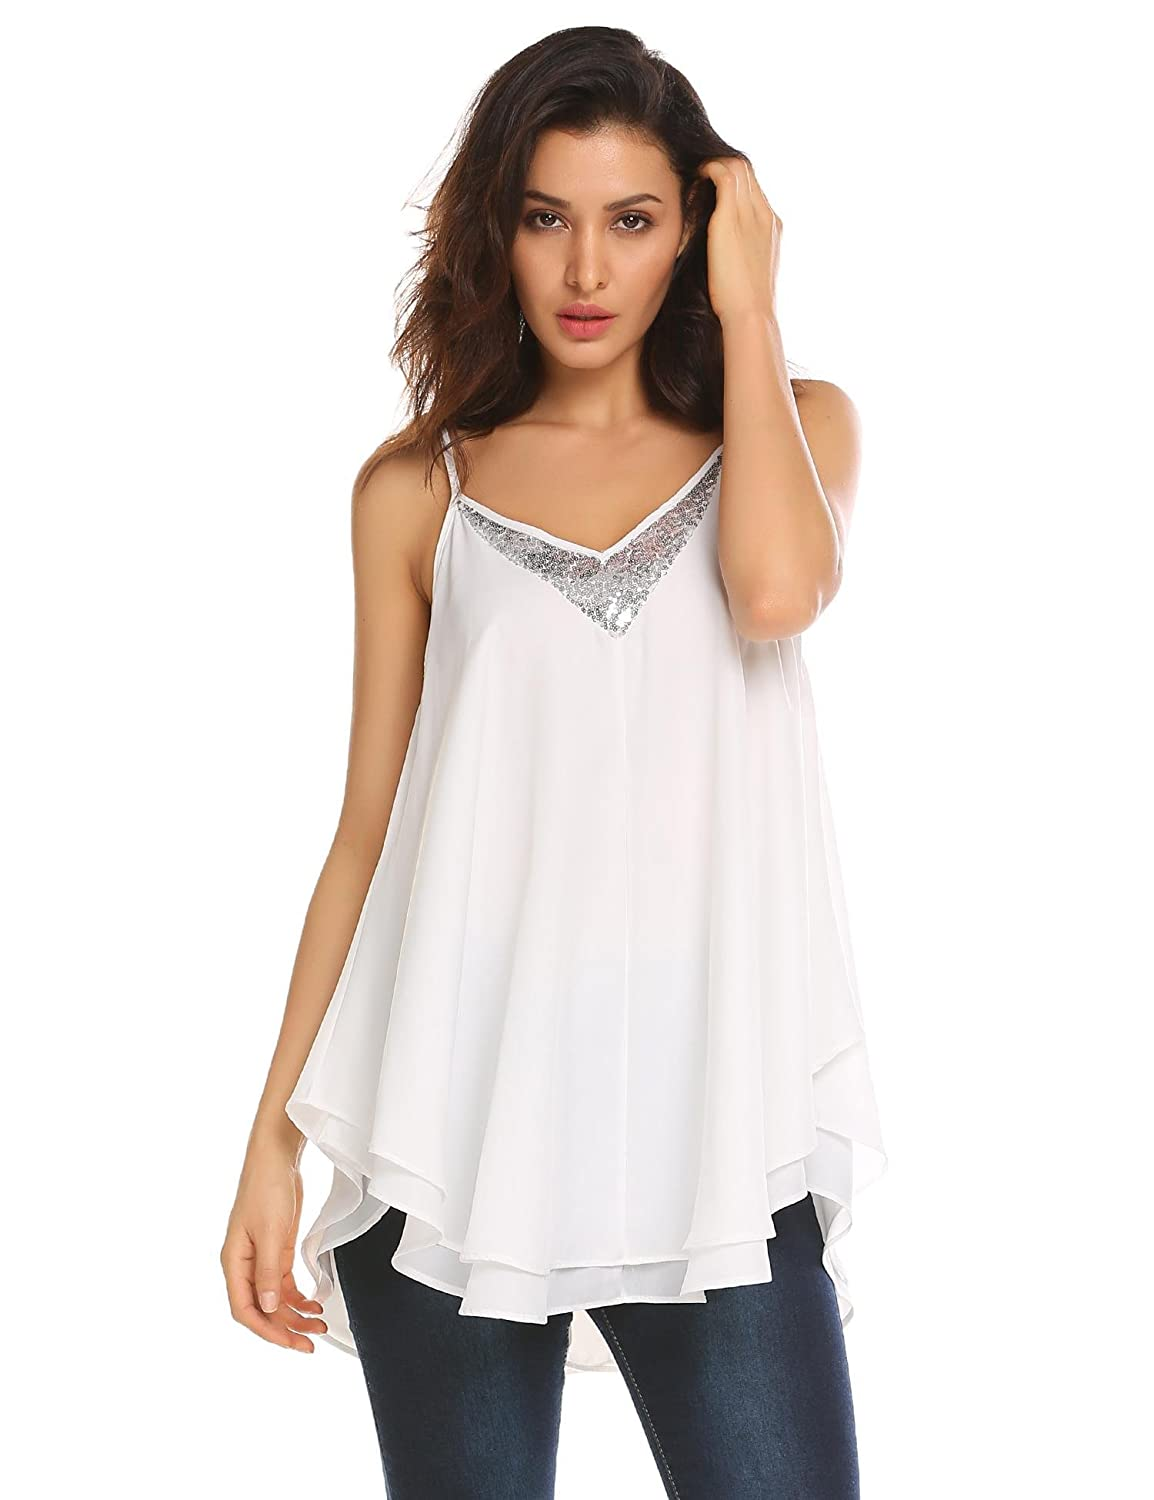 bb662891d7c72 Top 10 wholesale Layered Tank Top Look - Chinabrands.com